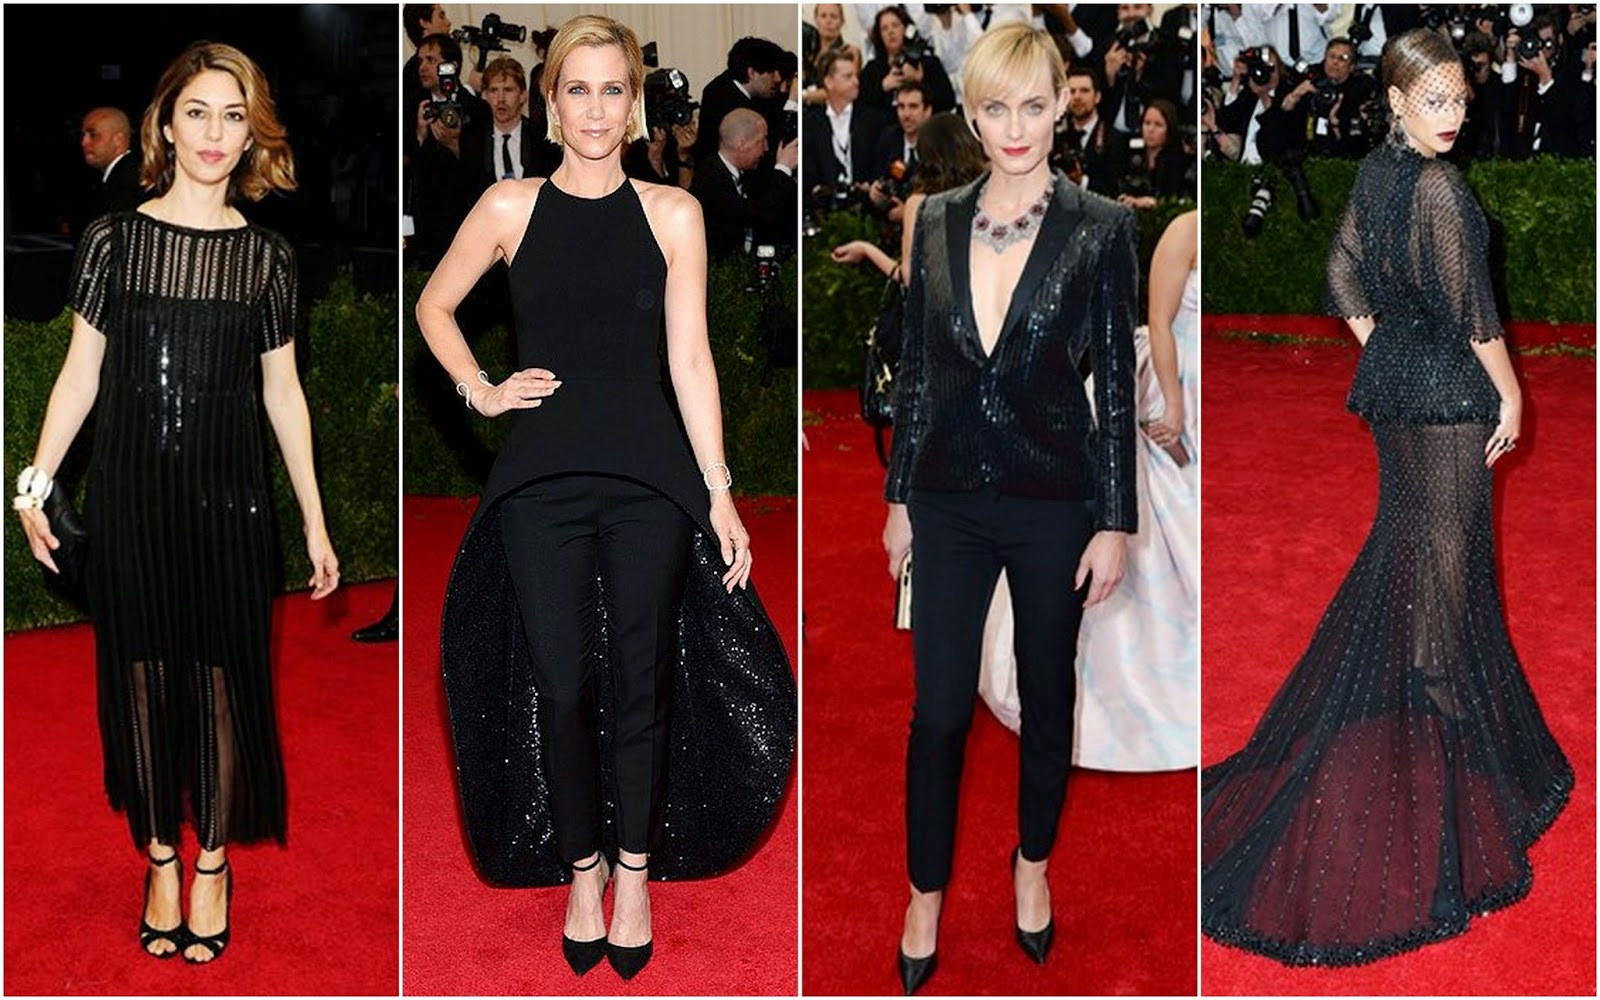 Met Gala 2014 White Tie And Decorations Fashion Photo